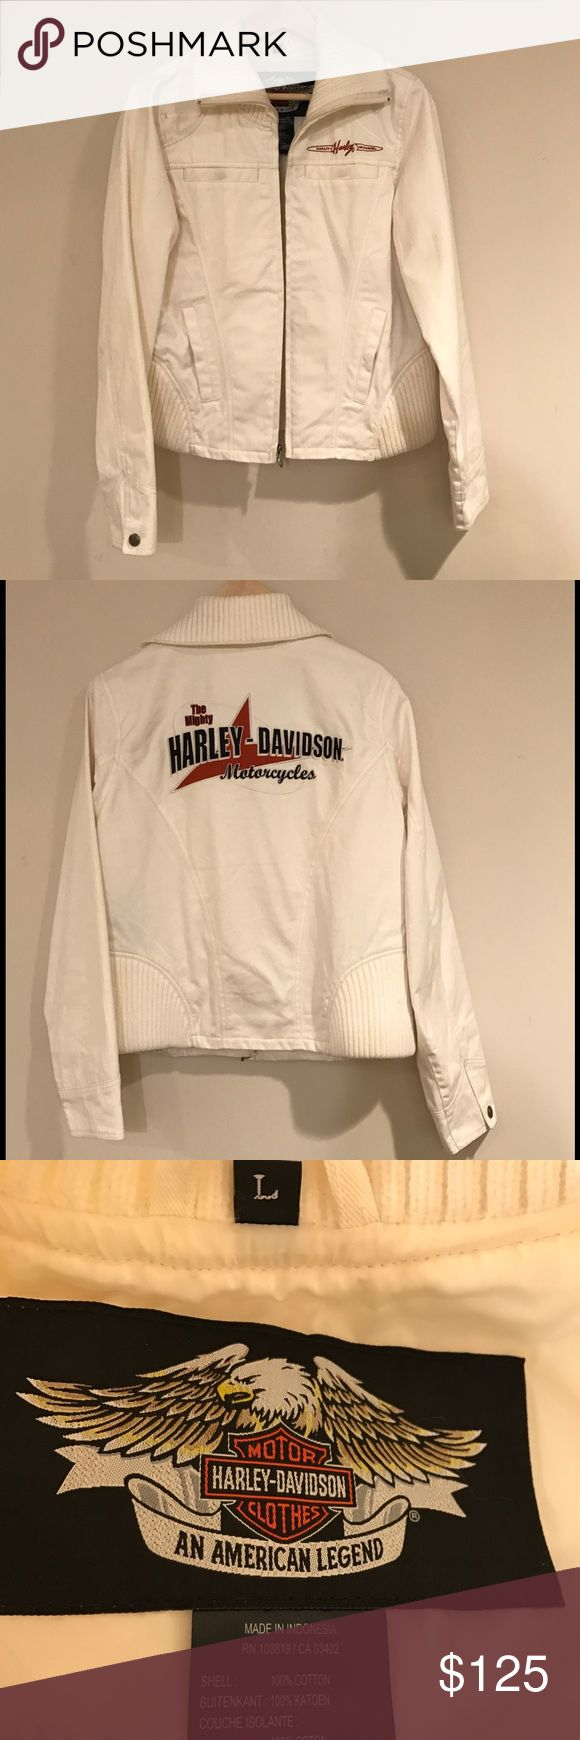 Harley-Davidson Jacket Excellent condition! Cream colored jacket with large Harley emblem on the back. Purchased at Harley-Davidson store. It has just been sitting in storage. Needs to be worn out! Has a few washable marks on it from being it storage (see sleeve photo)other than that it's in mint condition! Has a matching scarf sold separately. Buy both and save 5% NO TRADES PLEASE. Harley-Davidson Jackets & Coats